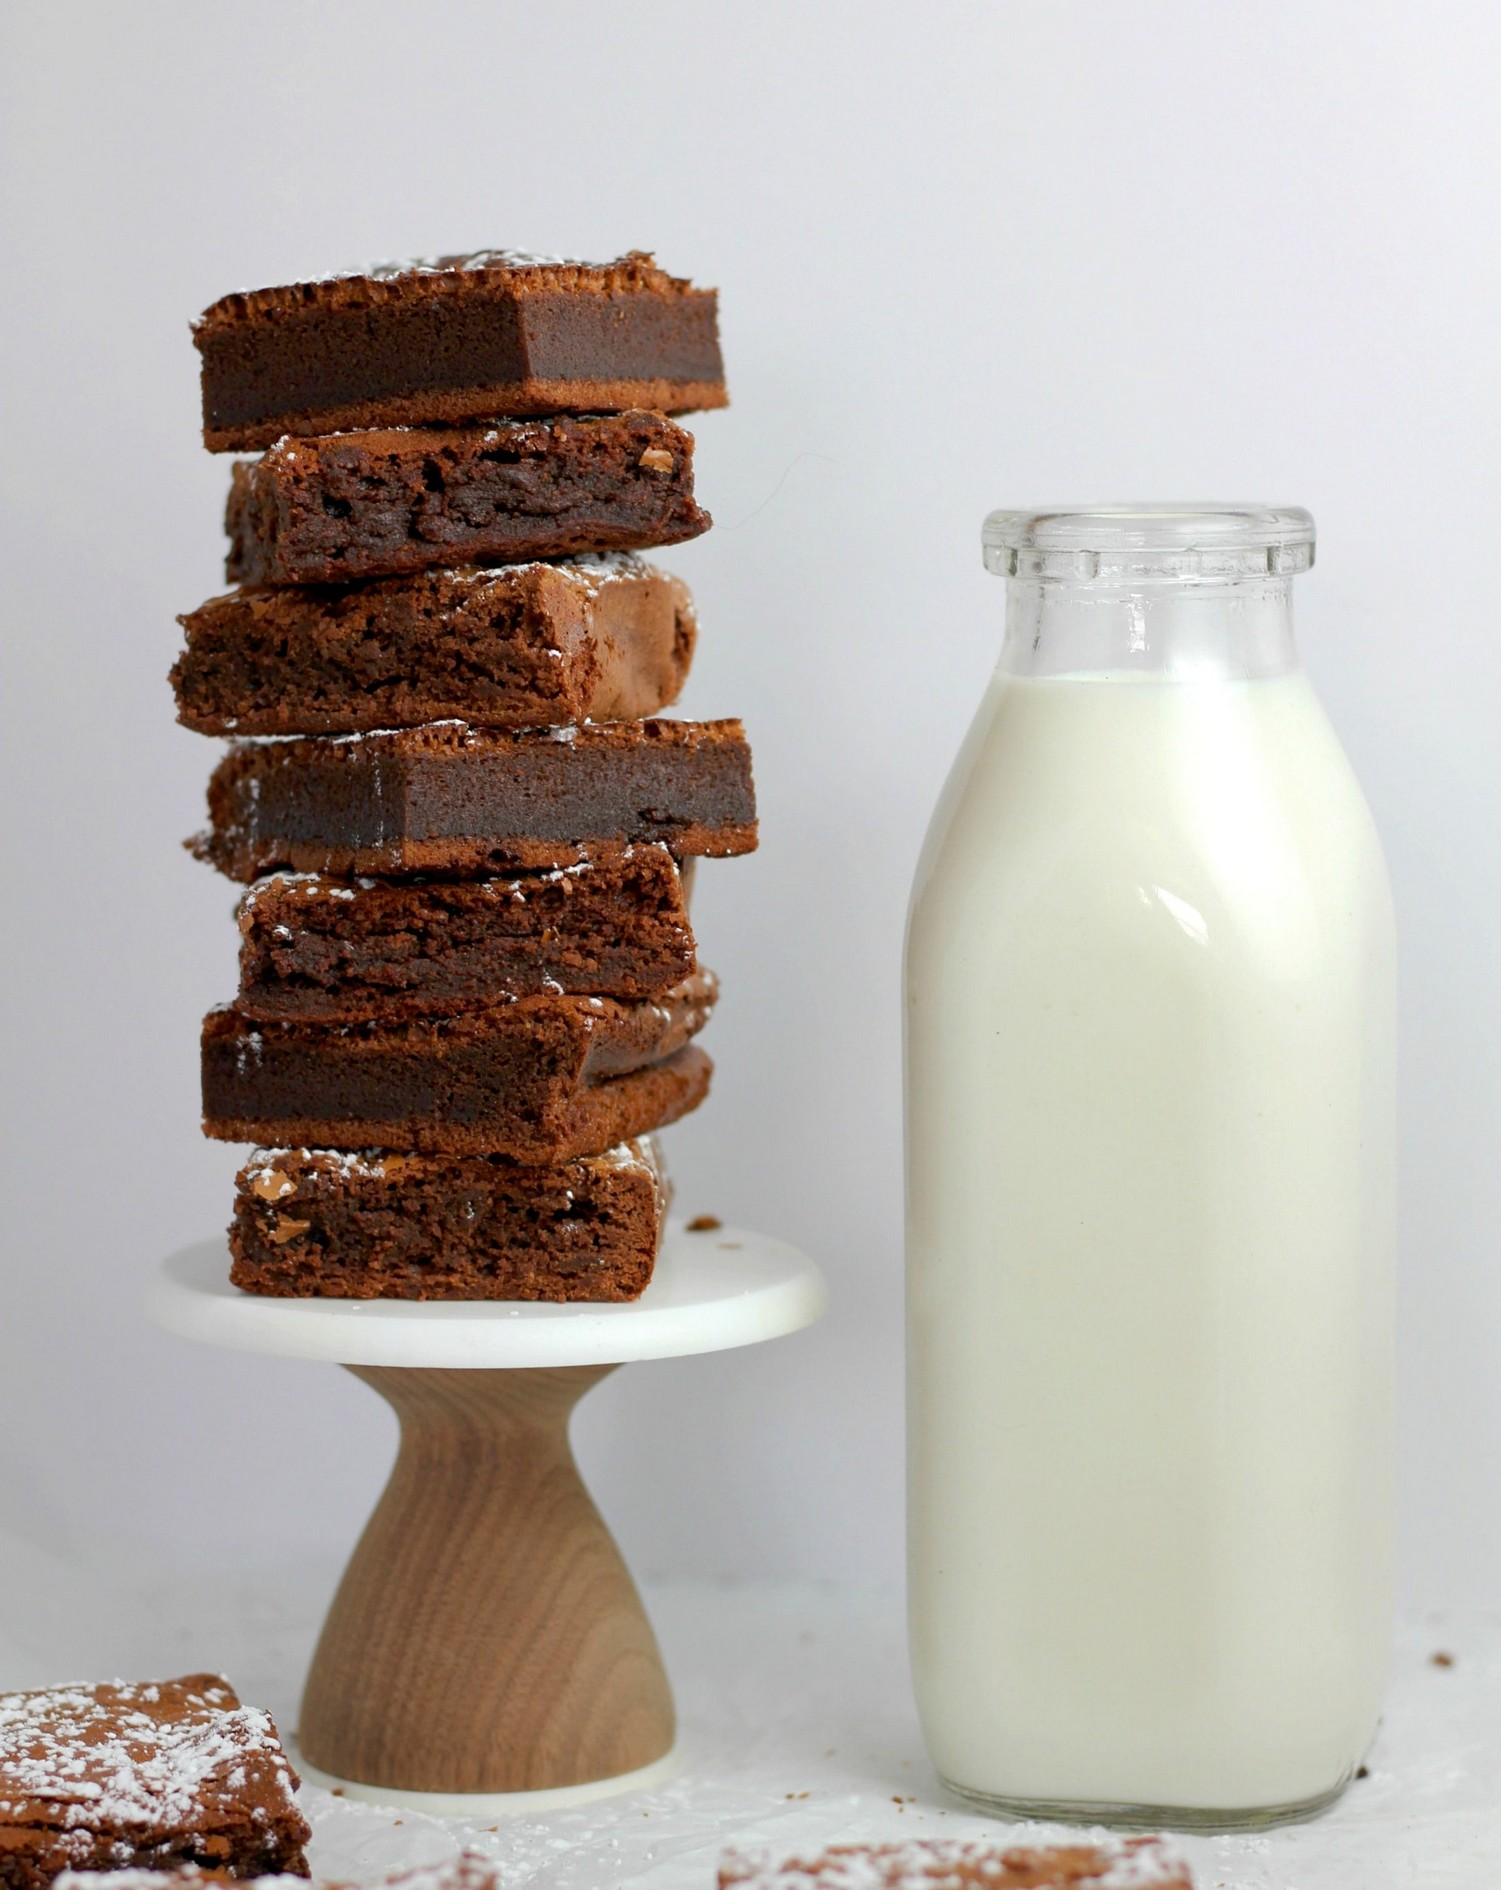 dairy in your diet: a glass bottle of milk sat beside a short tower of chocolate brownies.